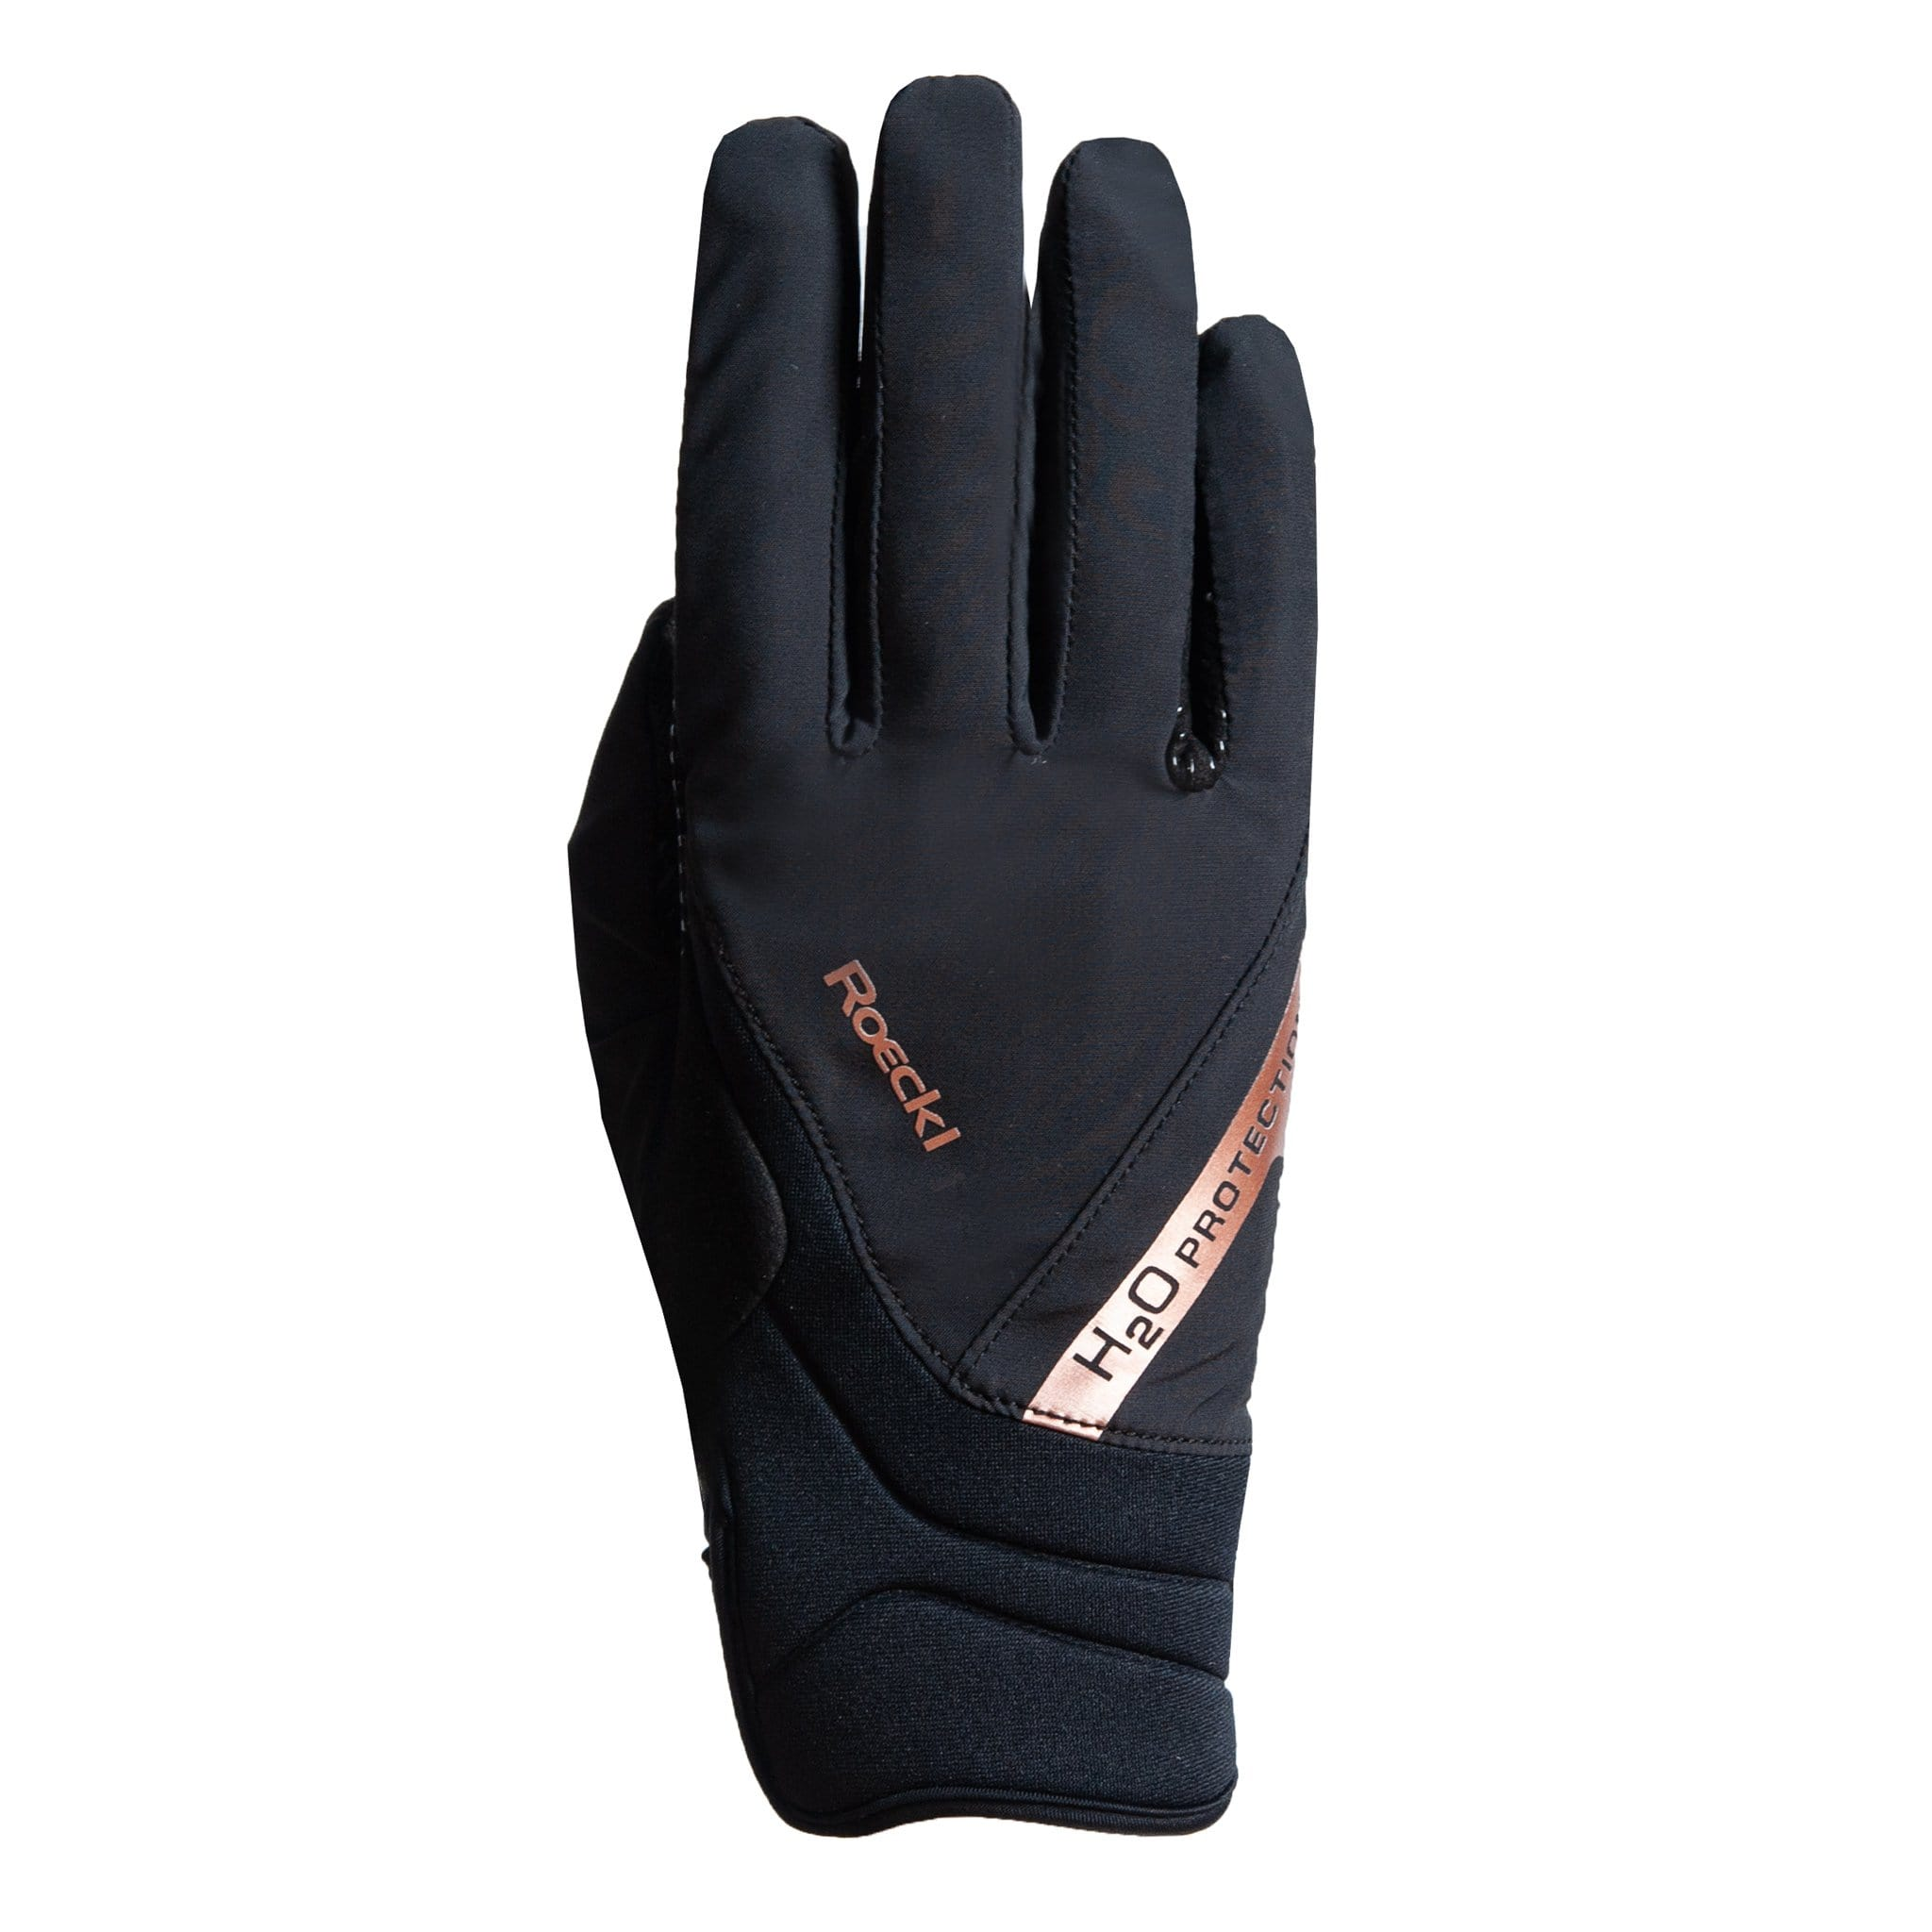 Roeckl Warendorf Waterproof Gloves 3301-583 Black and Copper Rose Gold Back